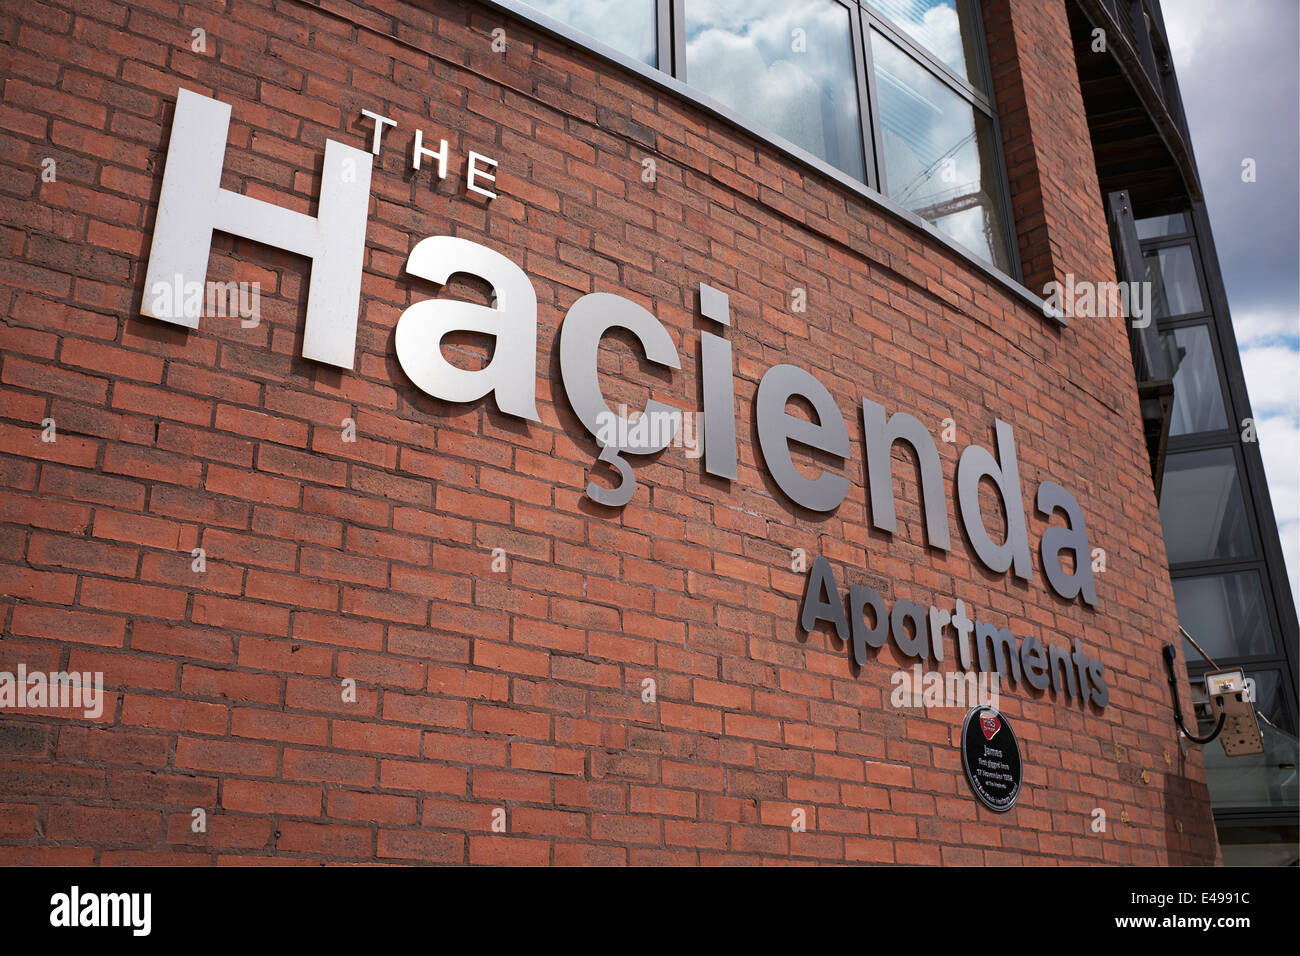 The Hacienda Apartments building in Manchester city centre uk - Stock Image